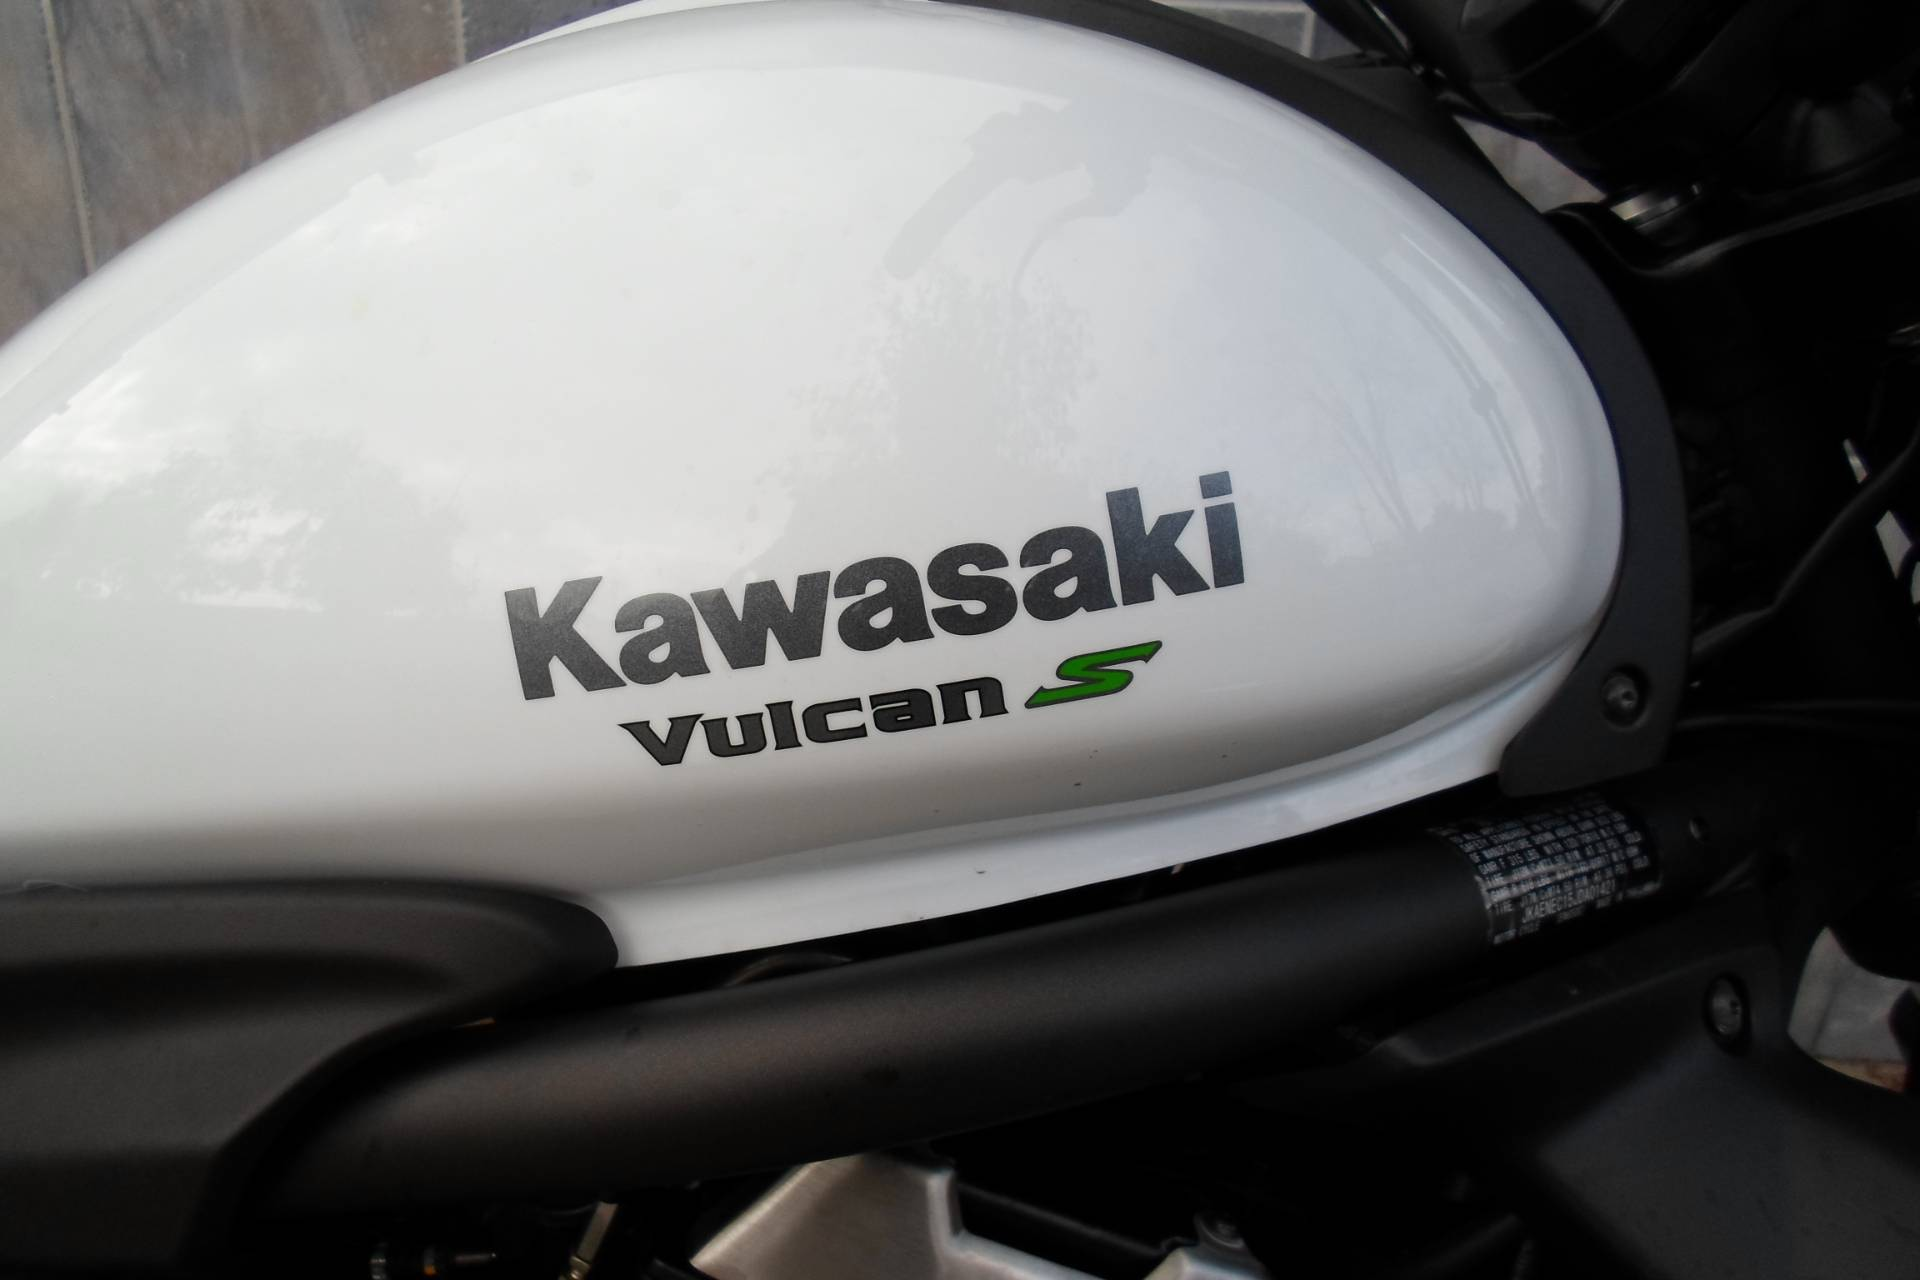 2018 Kawasaki Vulcan S in San Marcos, California - Photo 8